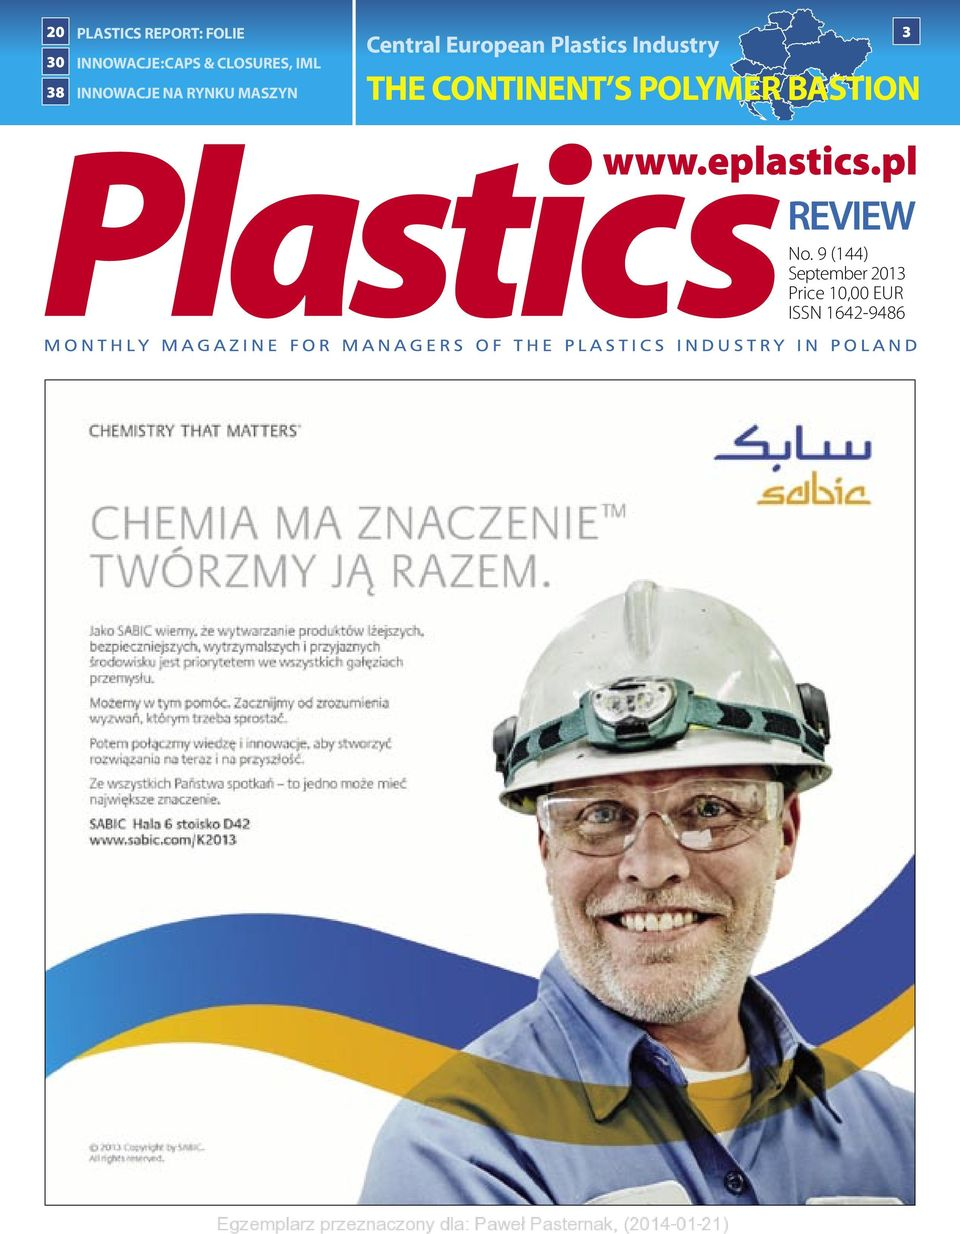 European Plastics Industry 3 THE CONTINENT S POLYMER